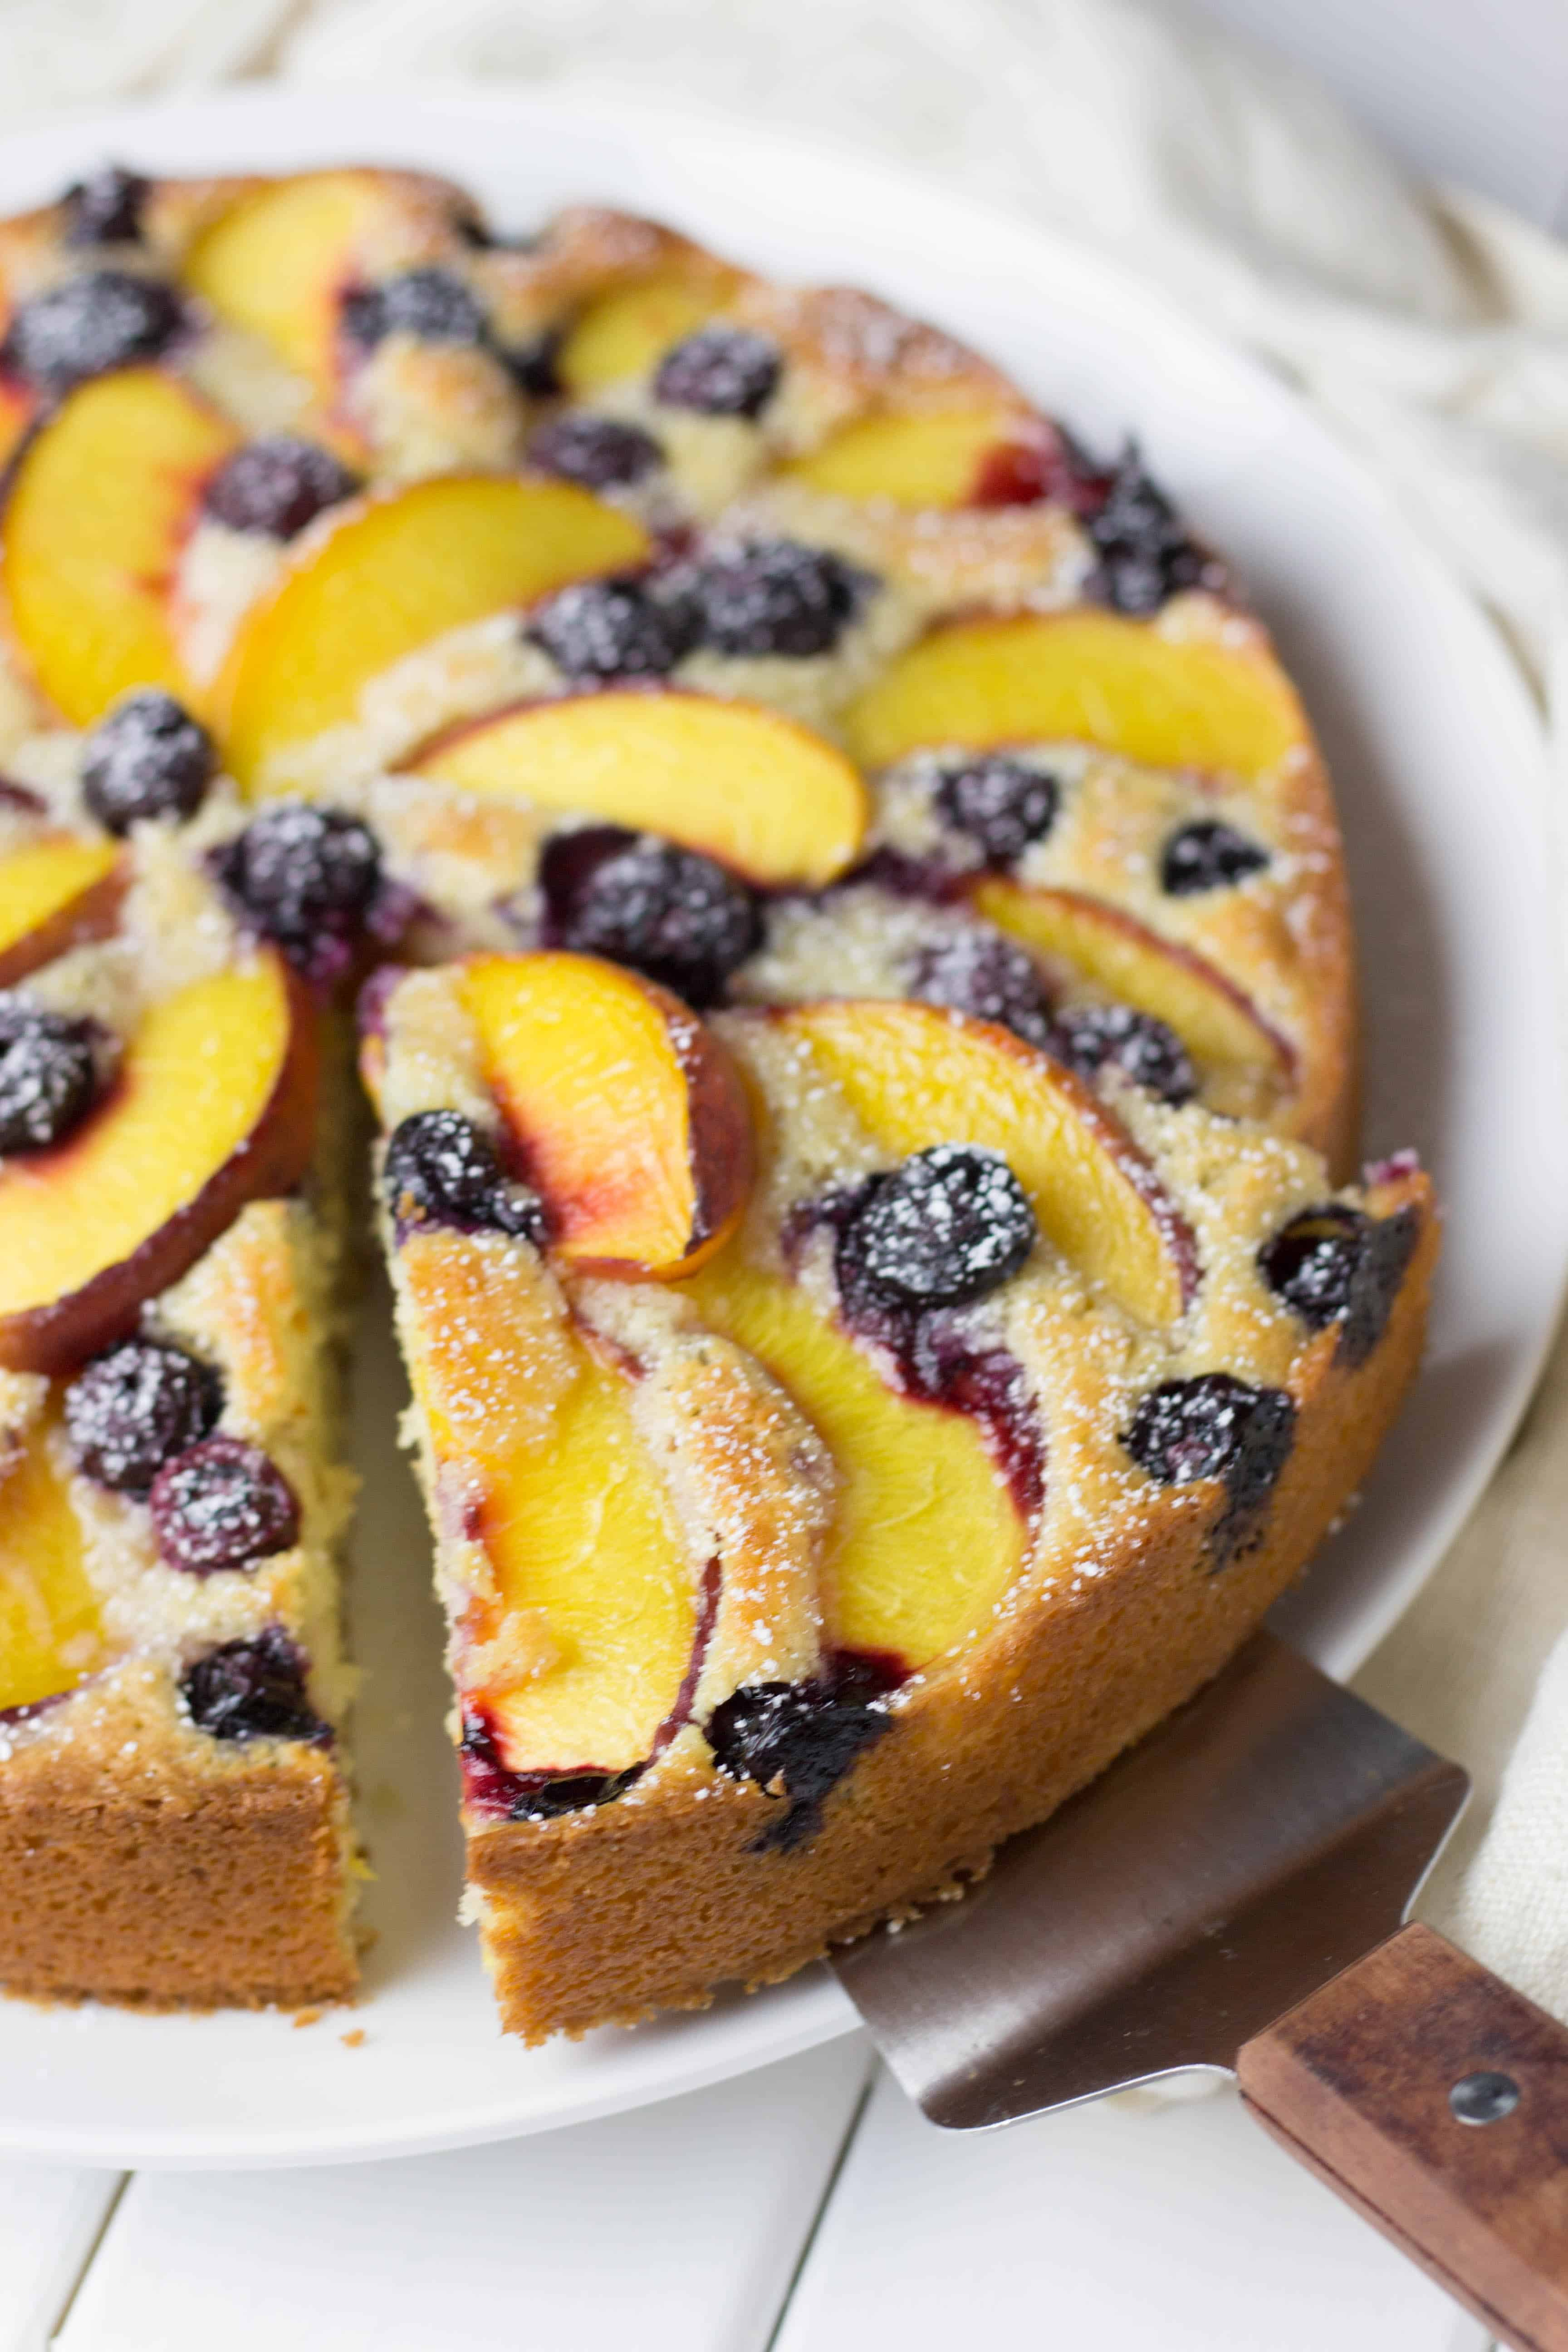 Peach and Blueberry Coffe Cake